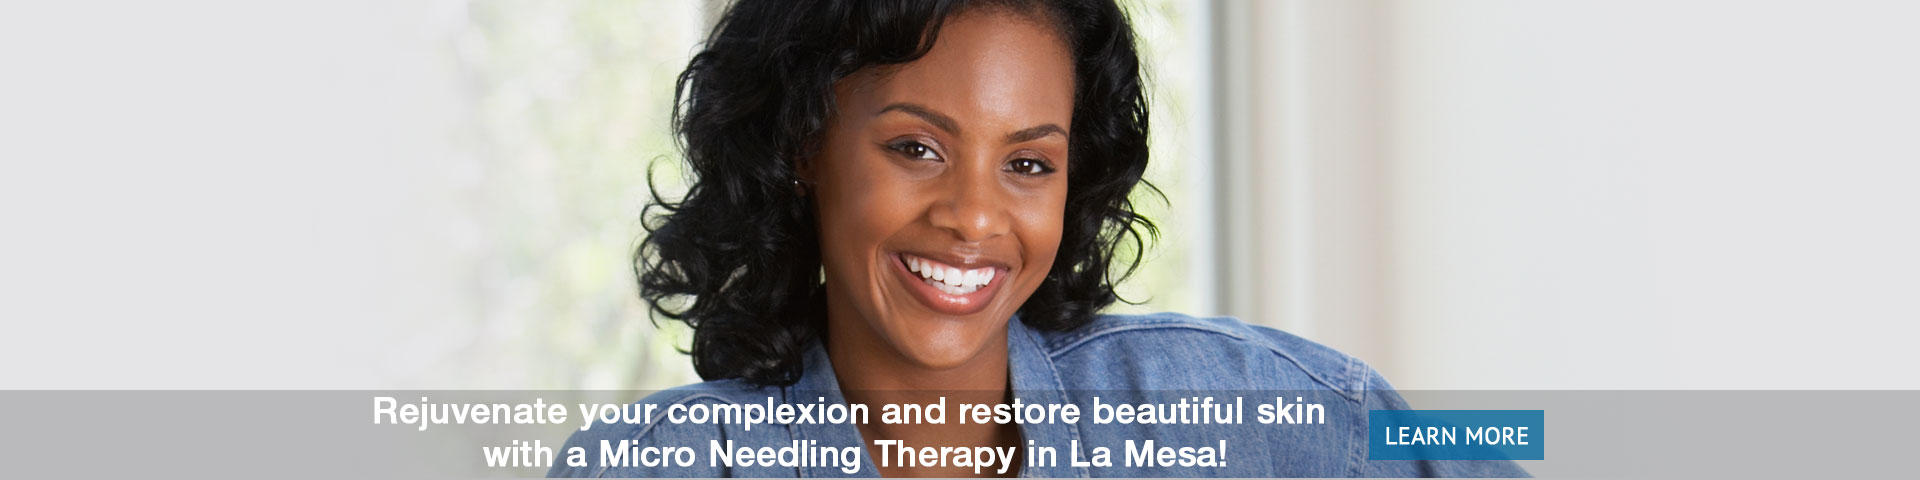 La Mesa, CA best micro needling theraphy for you